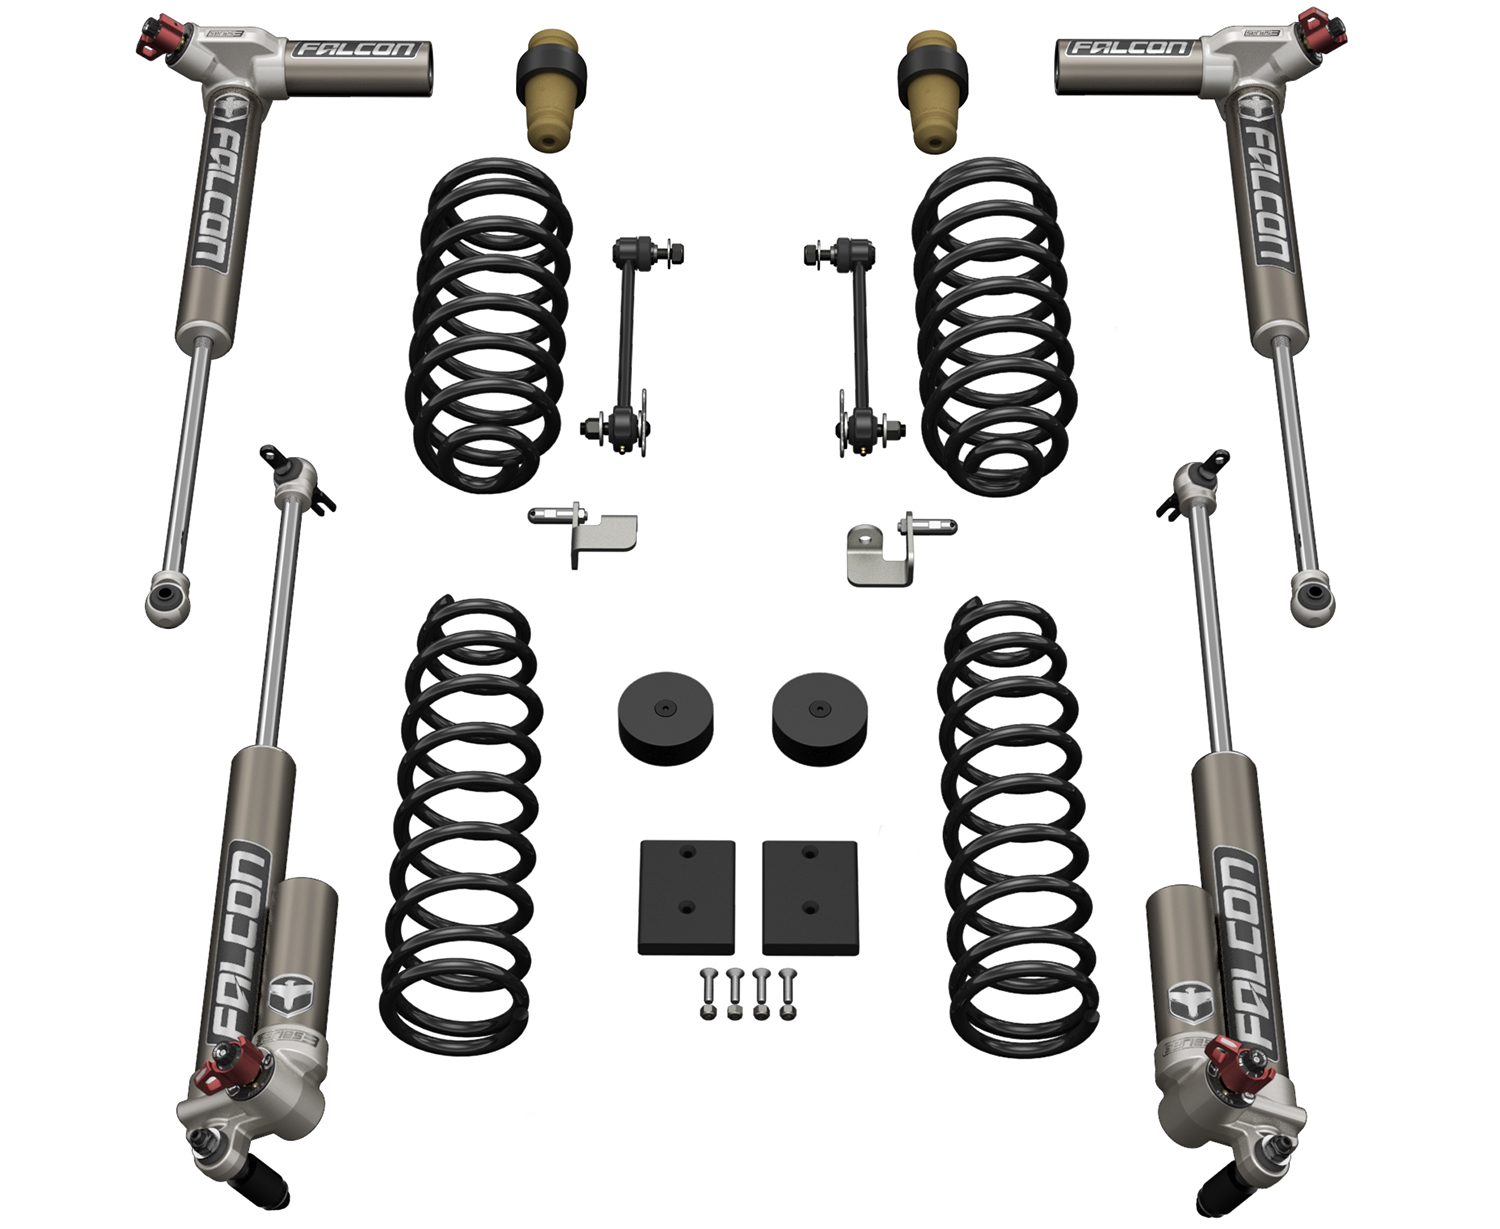 Teraflex 1.5in Sport ST1 Suspension System w/ 3.3 Falcon Shocks - JK 2dr